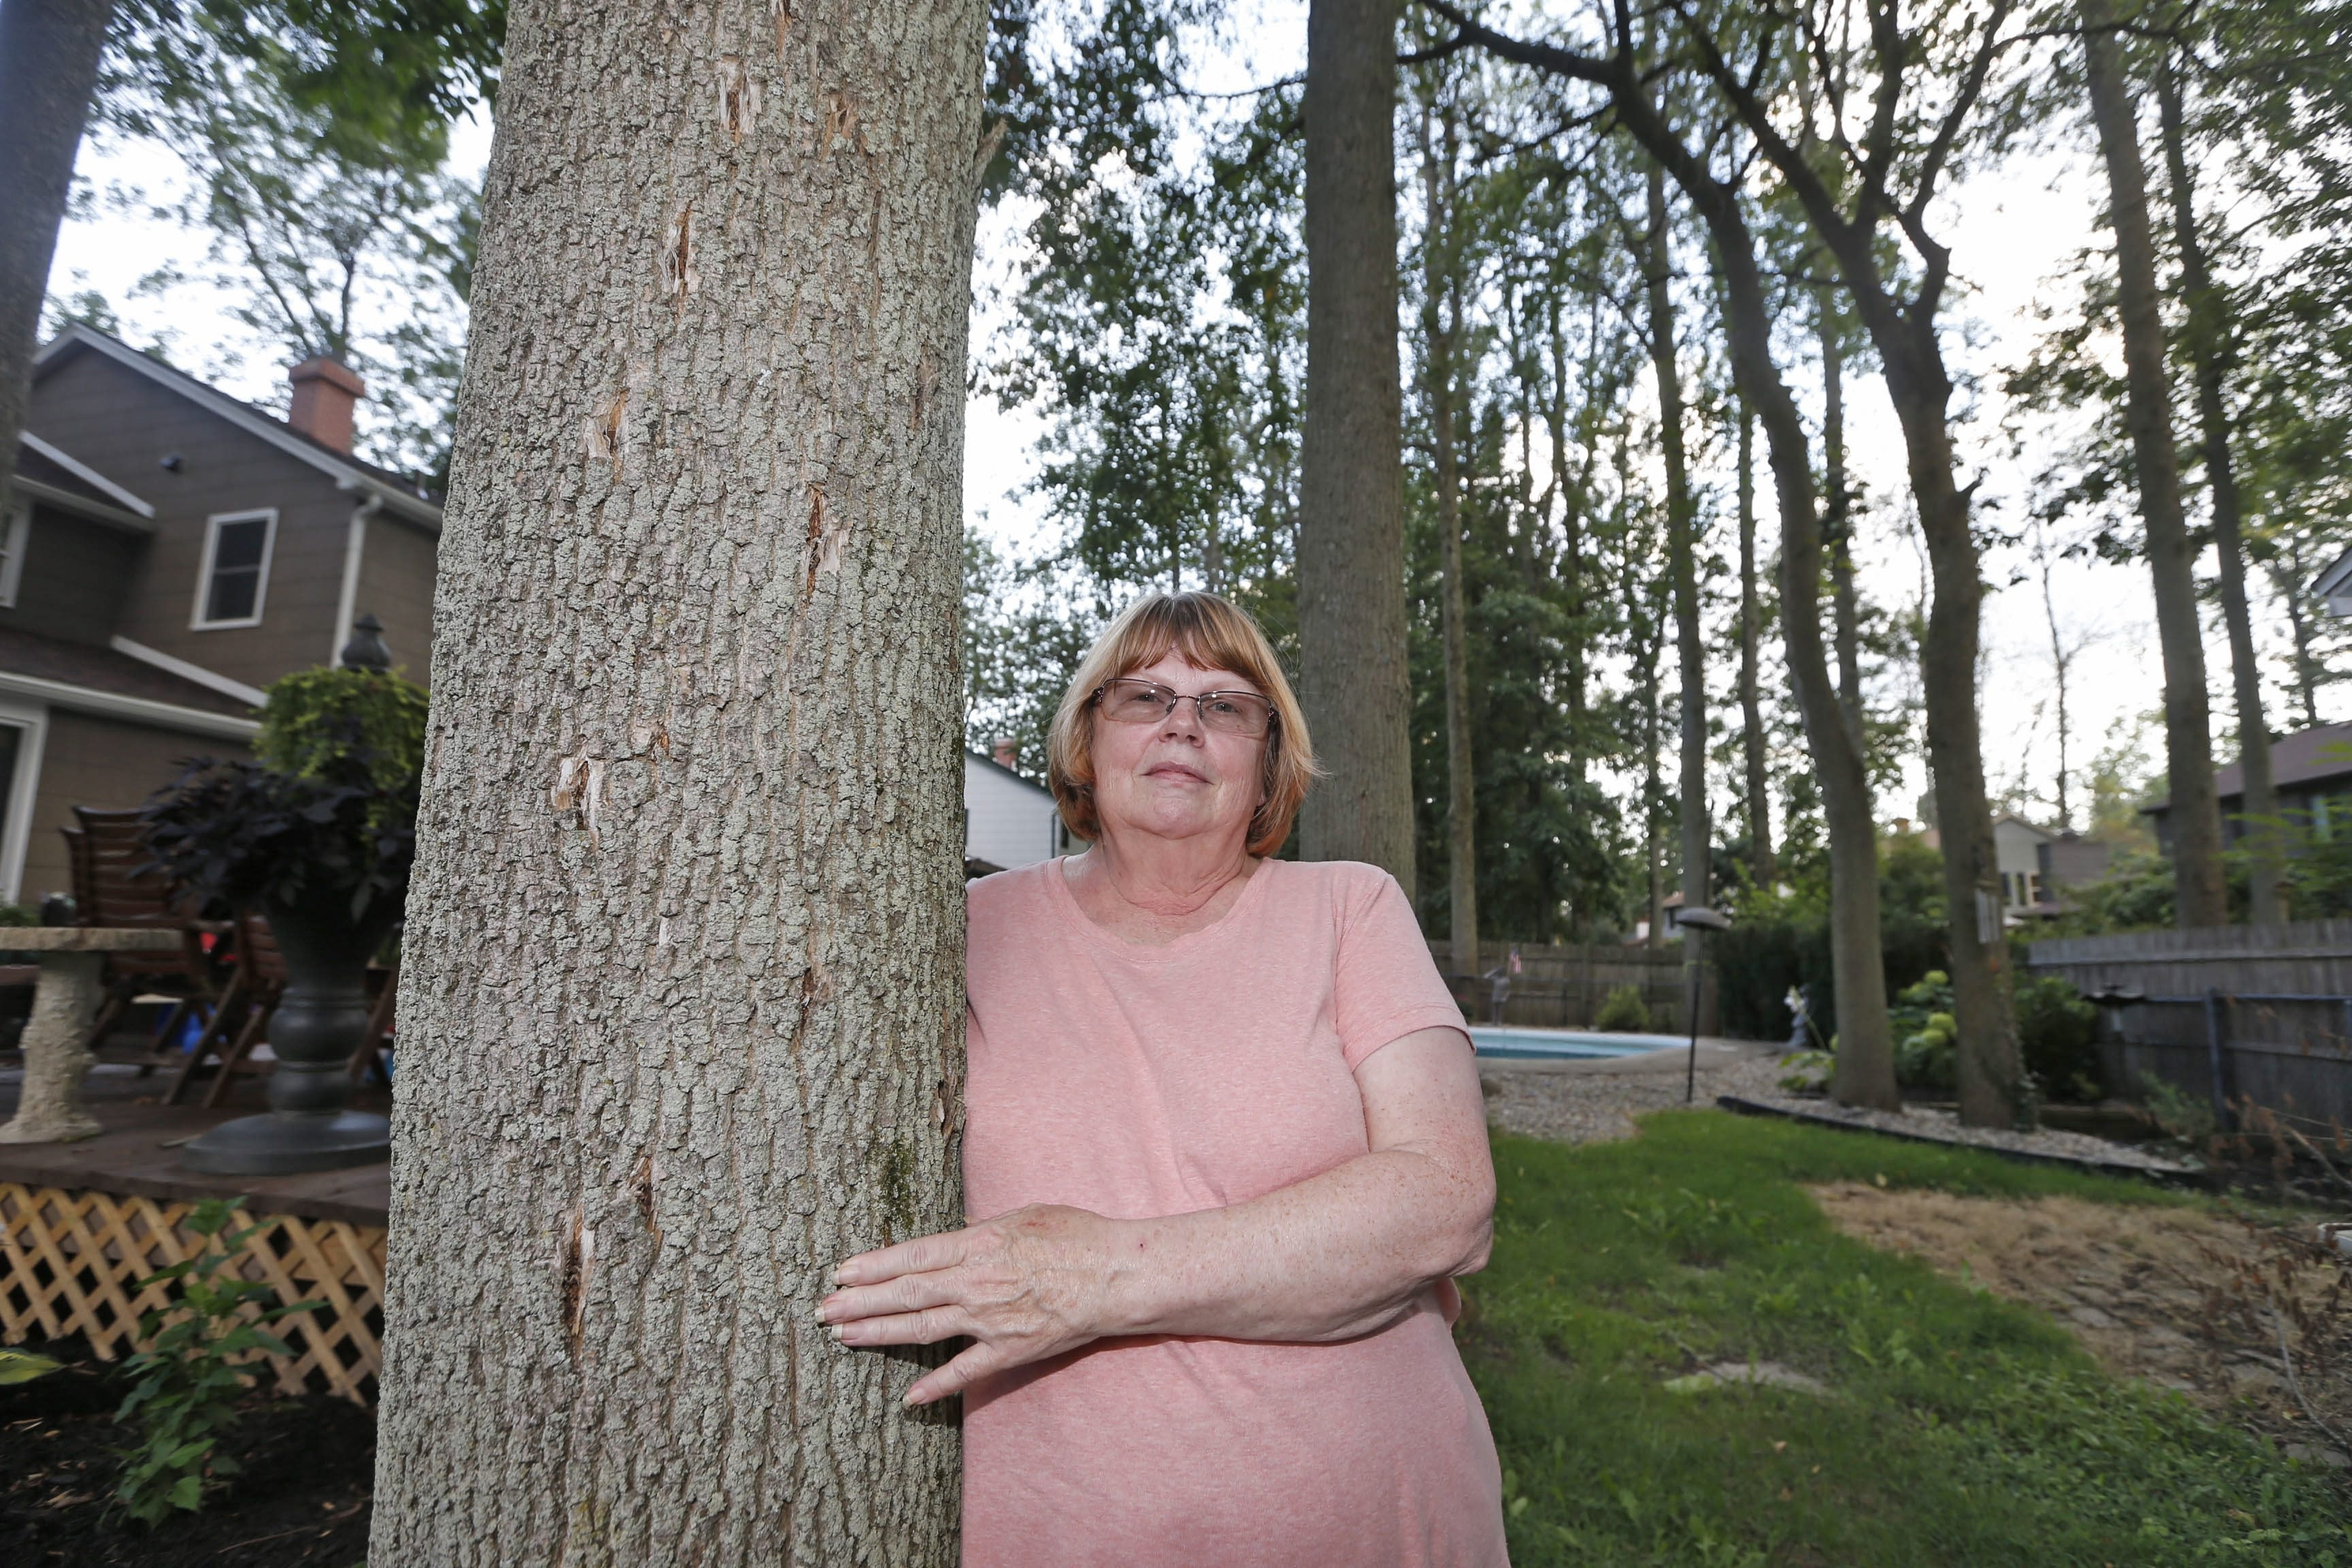 Judy Niemira had nine ash trees forming a cooling canopy over her East Amherst backyard. But she lost oneof them to the emerald ash borer, which has caused her to invest $1,300 in treatments to protect the others.